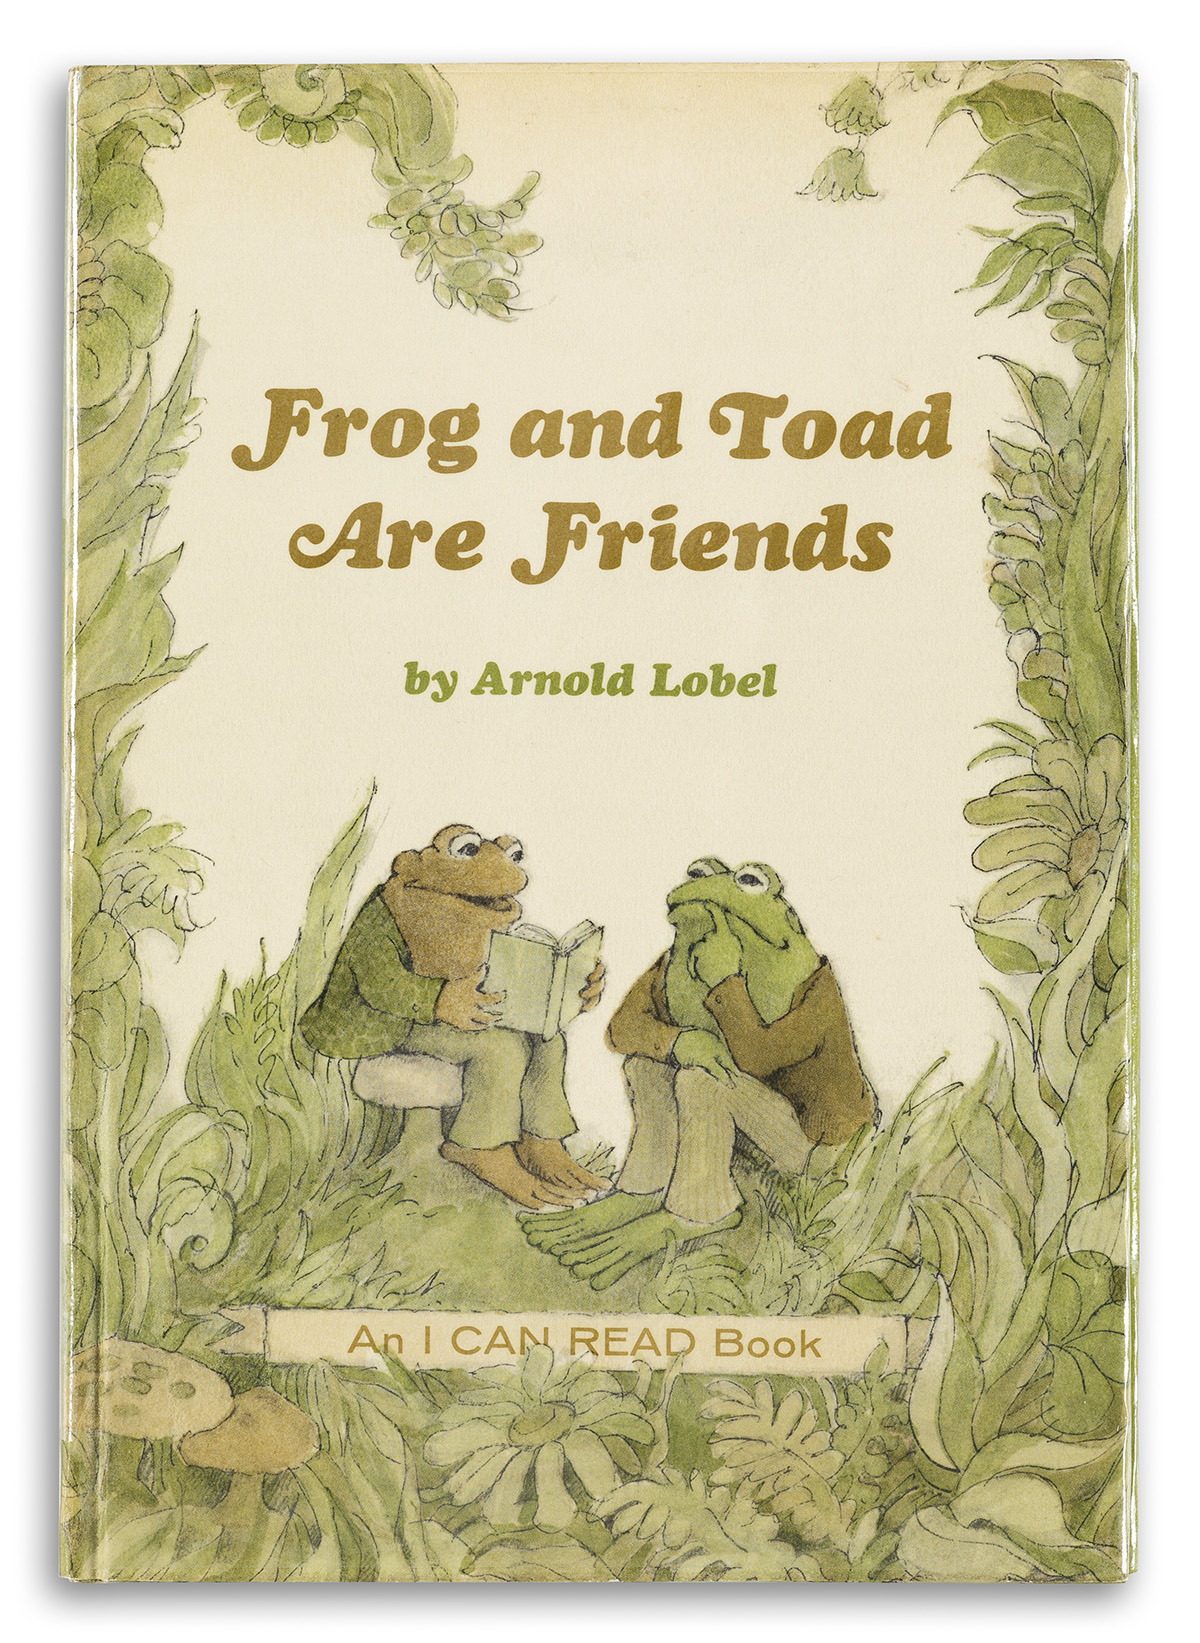 ARNOLD LOBEL (1933-1987)  Frog and Toad.